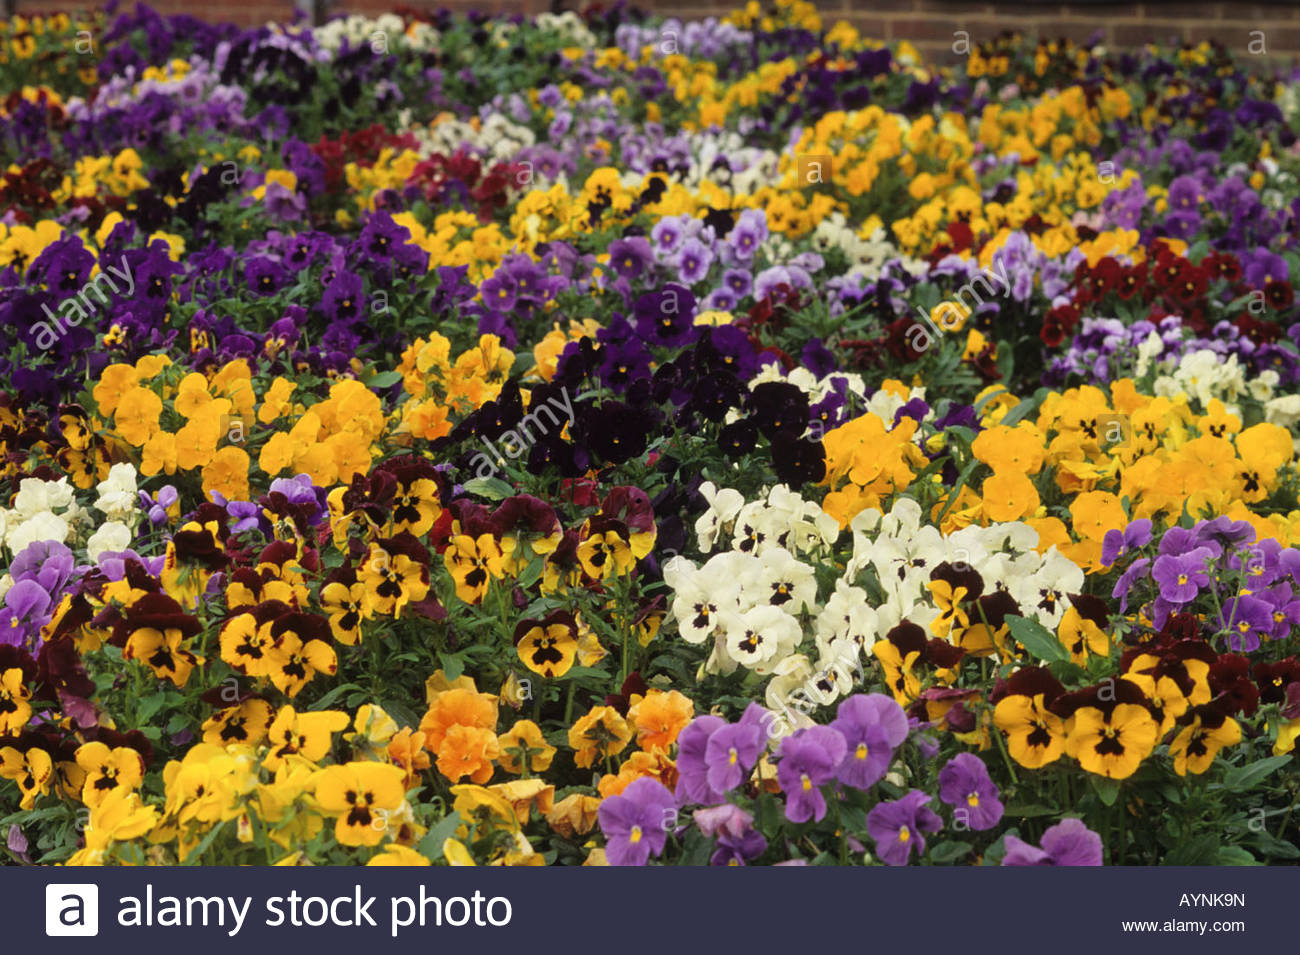 Winter flowering viola stock photos winter flowering viola stock pansy viola x wittrockiana universal series winter spring flowering annuals stock image izmirmasajfo